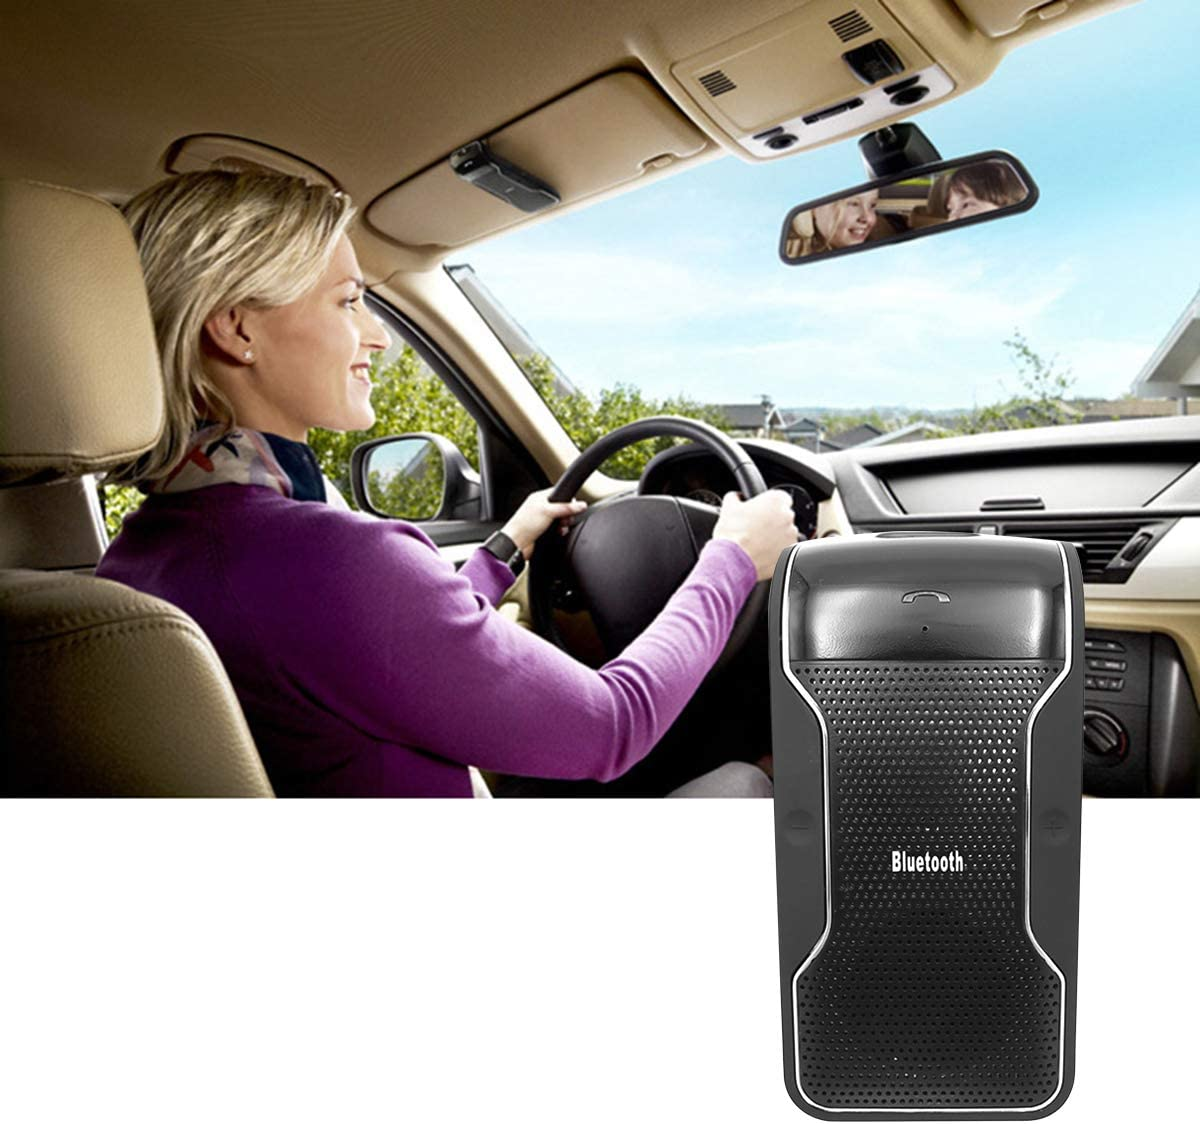 ROSEBEAR Multipoint Car Wireless Bluetooth Hands-Free Speakerphone,Built-in DSP Noise Suppression,Echo Cancellation Clip-on Speaker Kit for Car Sun Visor with 650mAh Battery Bluetooth Car Kits